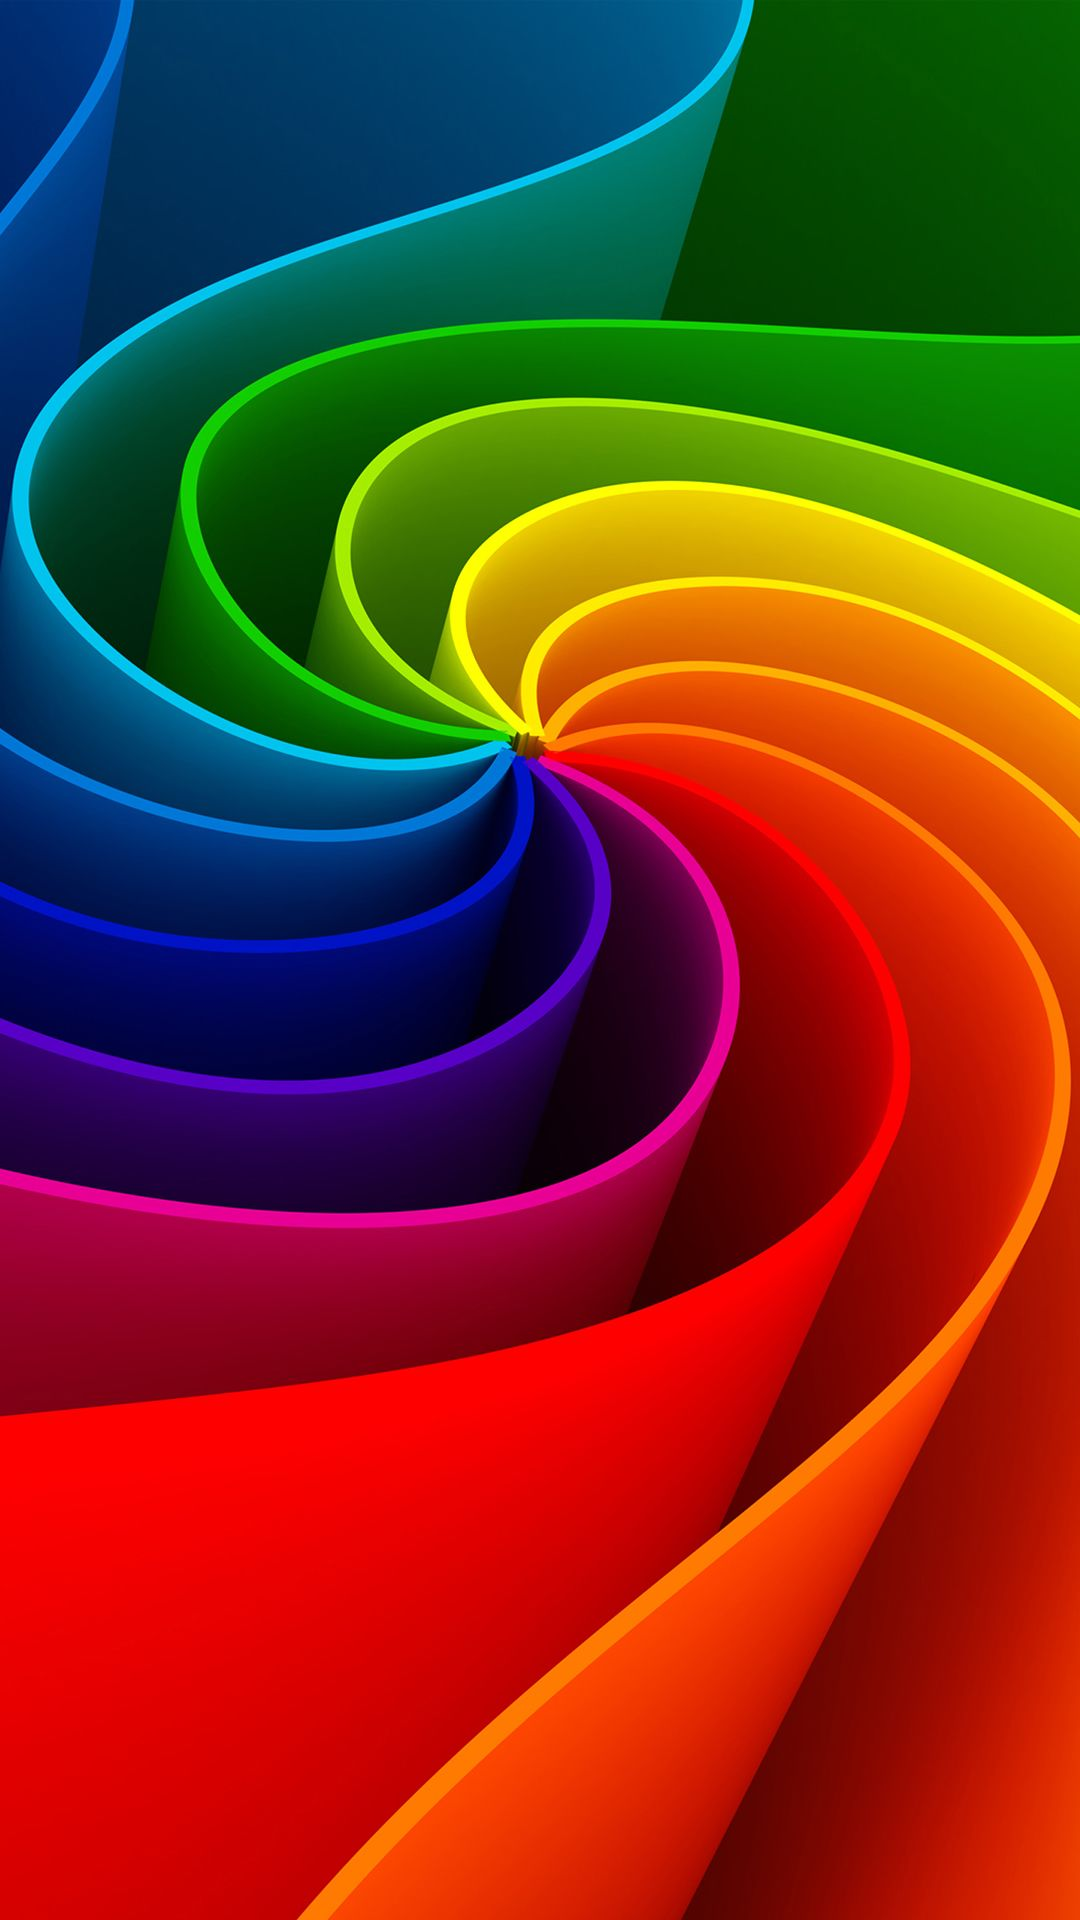 Iphone 6 background image - Colorful 3d Swirl Iphone 6 Wallpaper